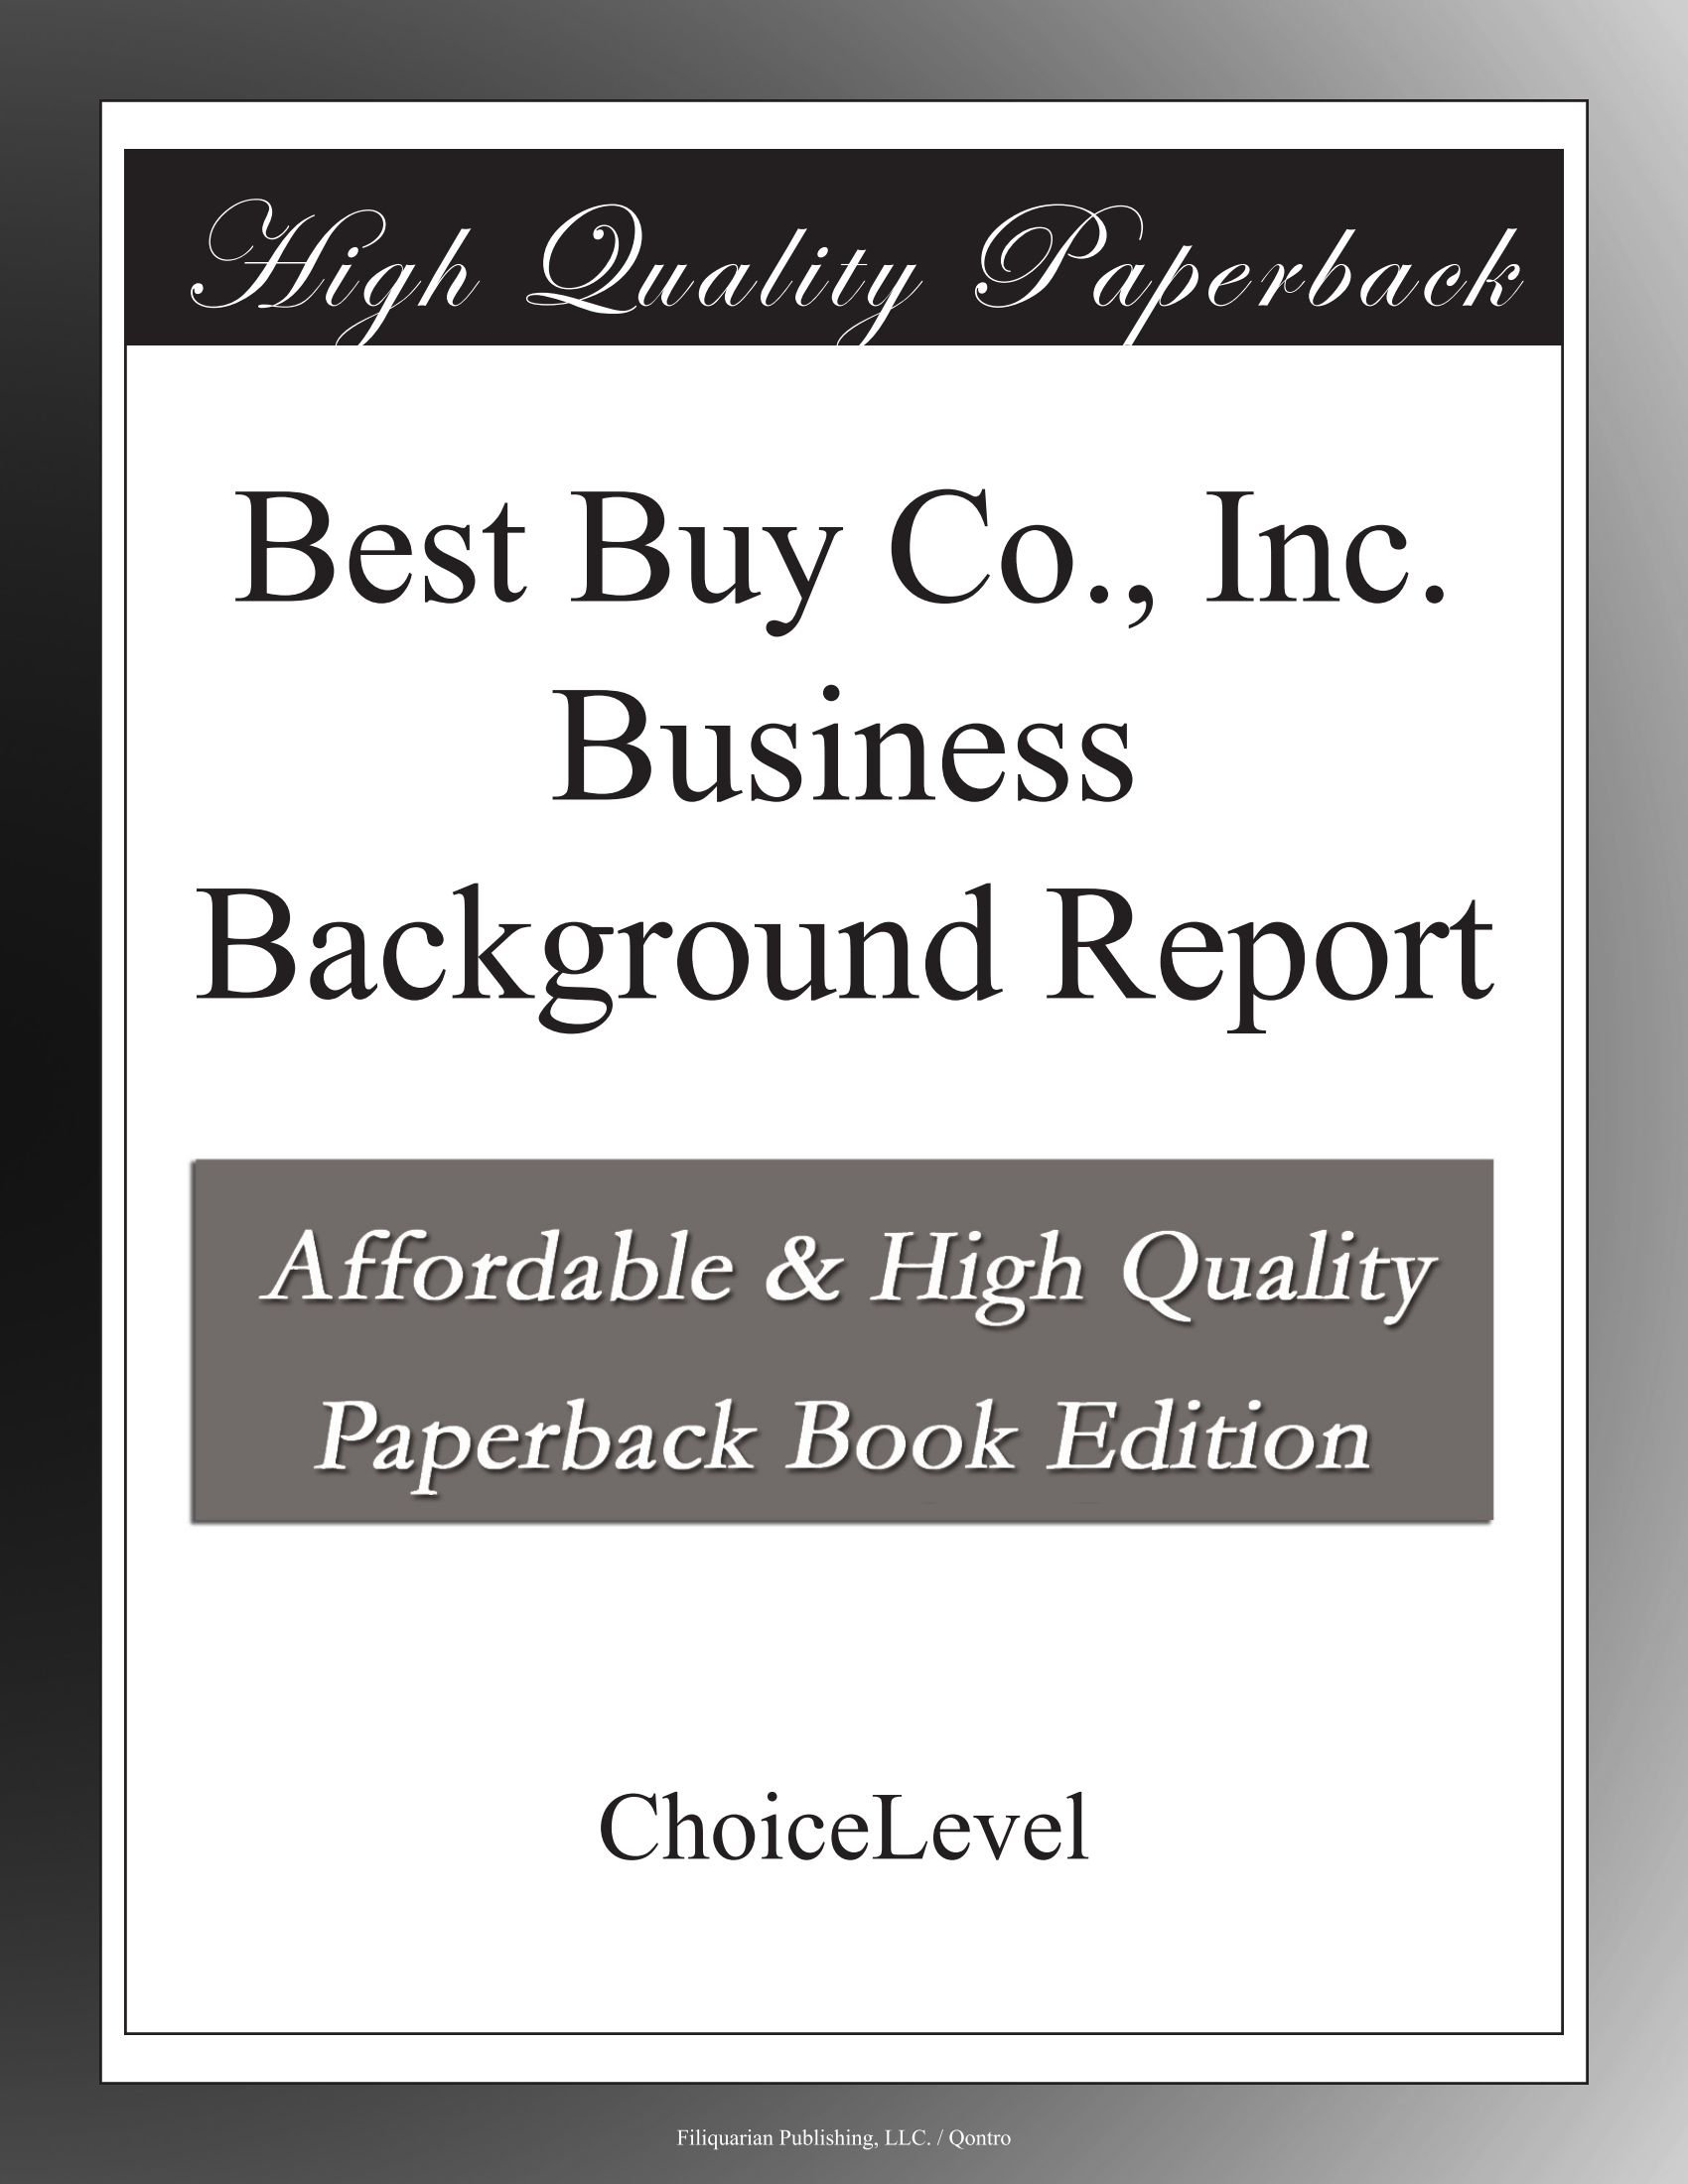 Best Buy Co., Inc. Business Background Report PDF